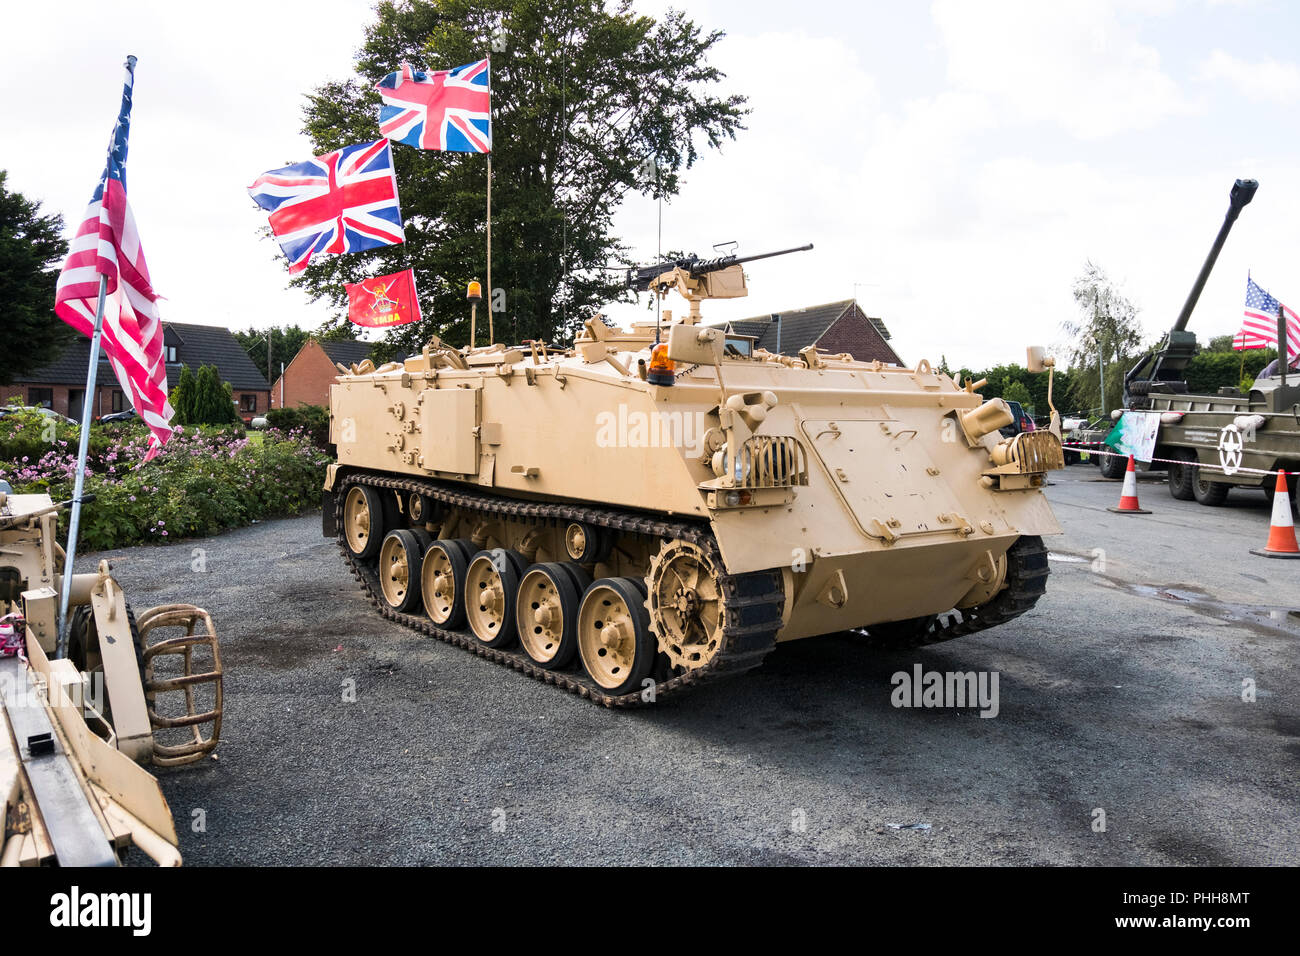 Ex British army AFV432 in desert colours on display - Stock Image